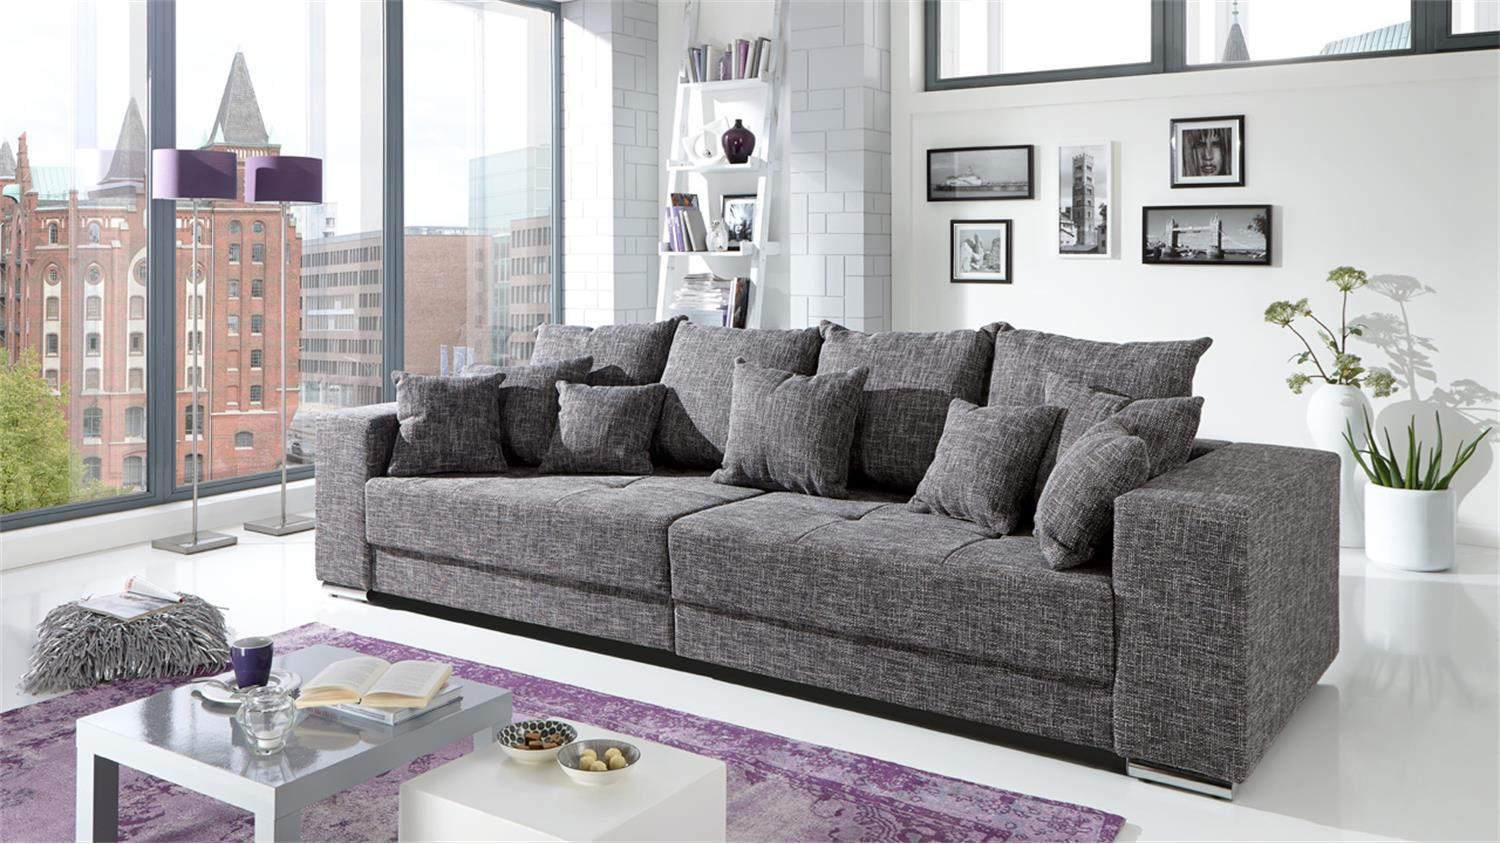 bigsofa adria sofa in webstoff graubraun mit vielen kissen. Black Bedroom Furniture Sets. Home Design Ideas